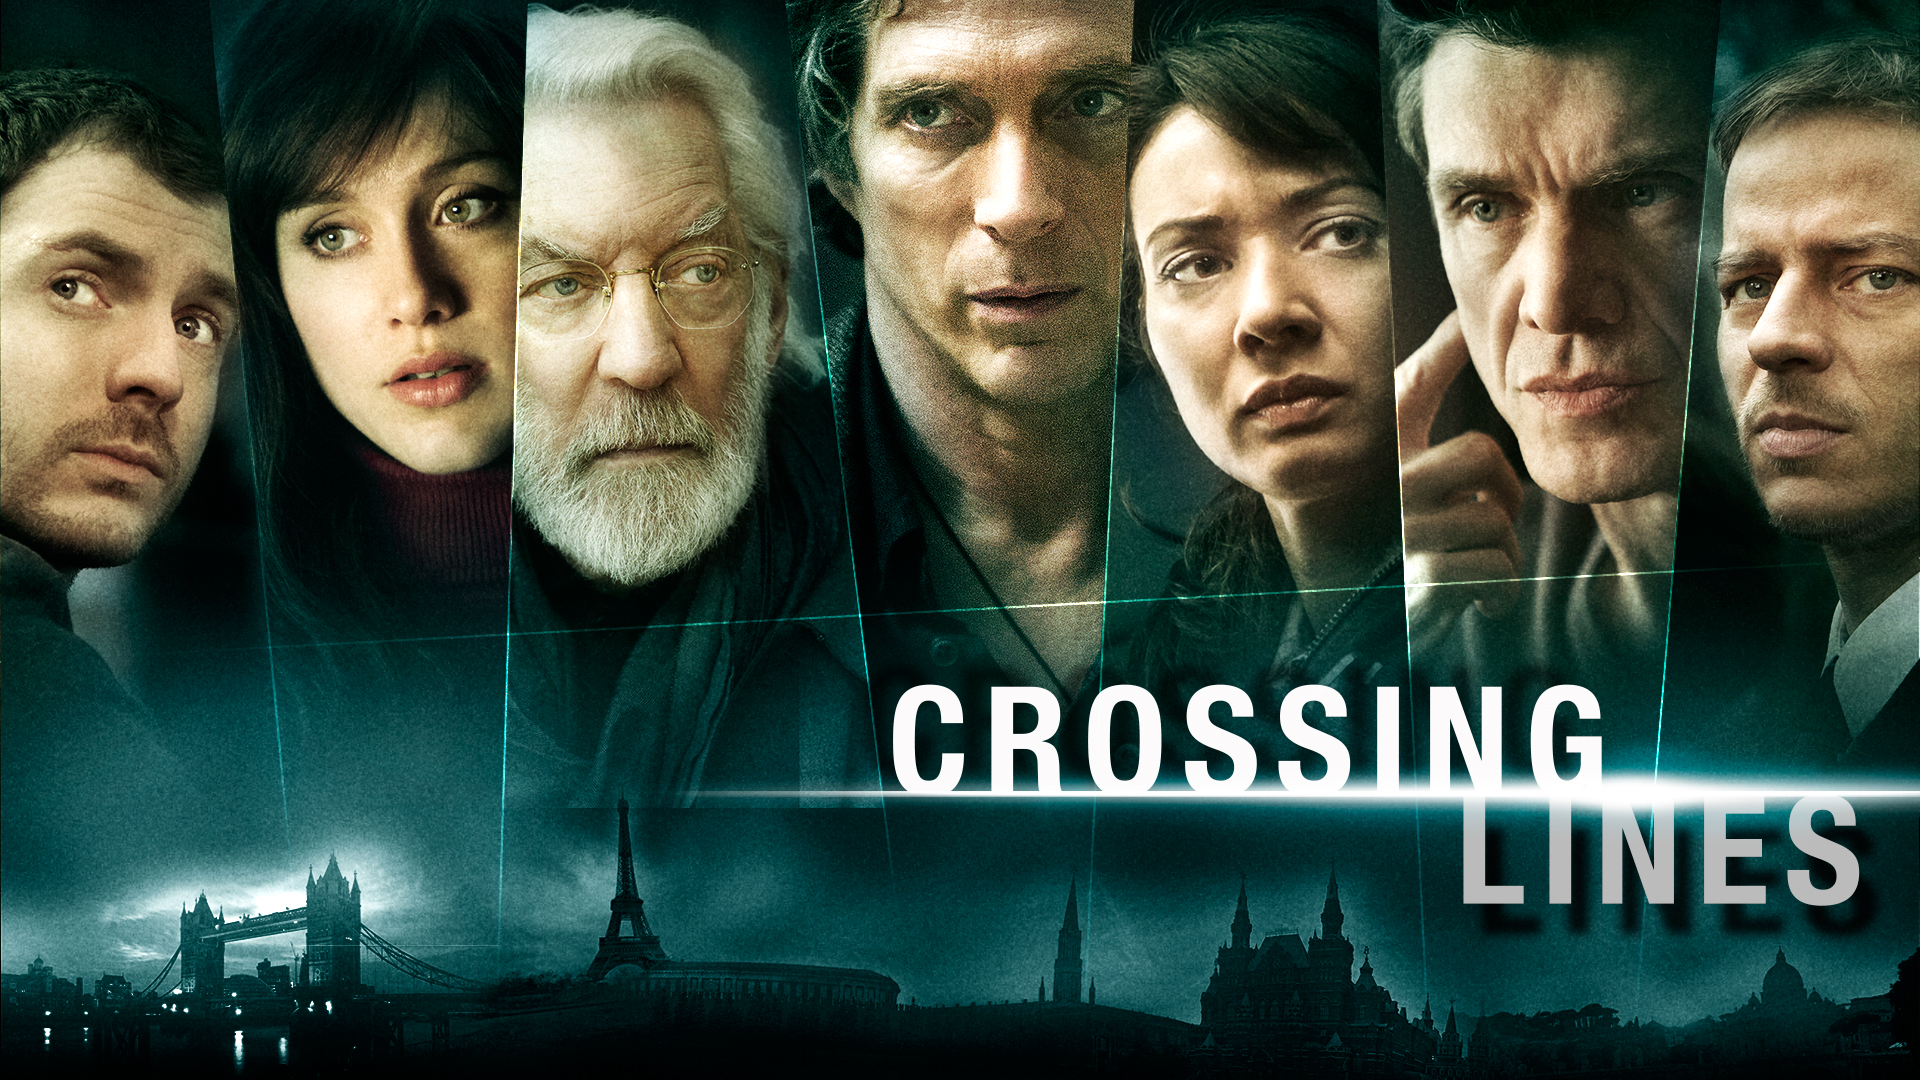 Crossed The Line Quotes: Crossing Lines Cast